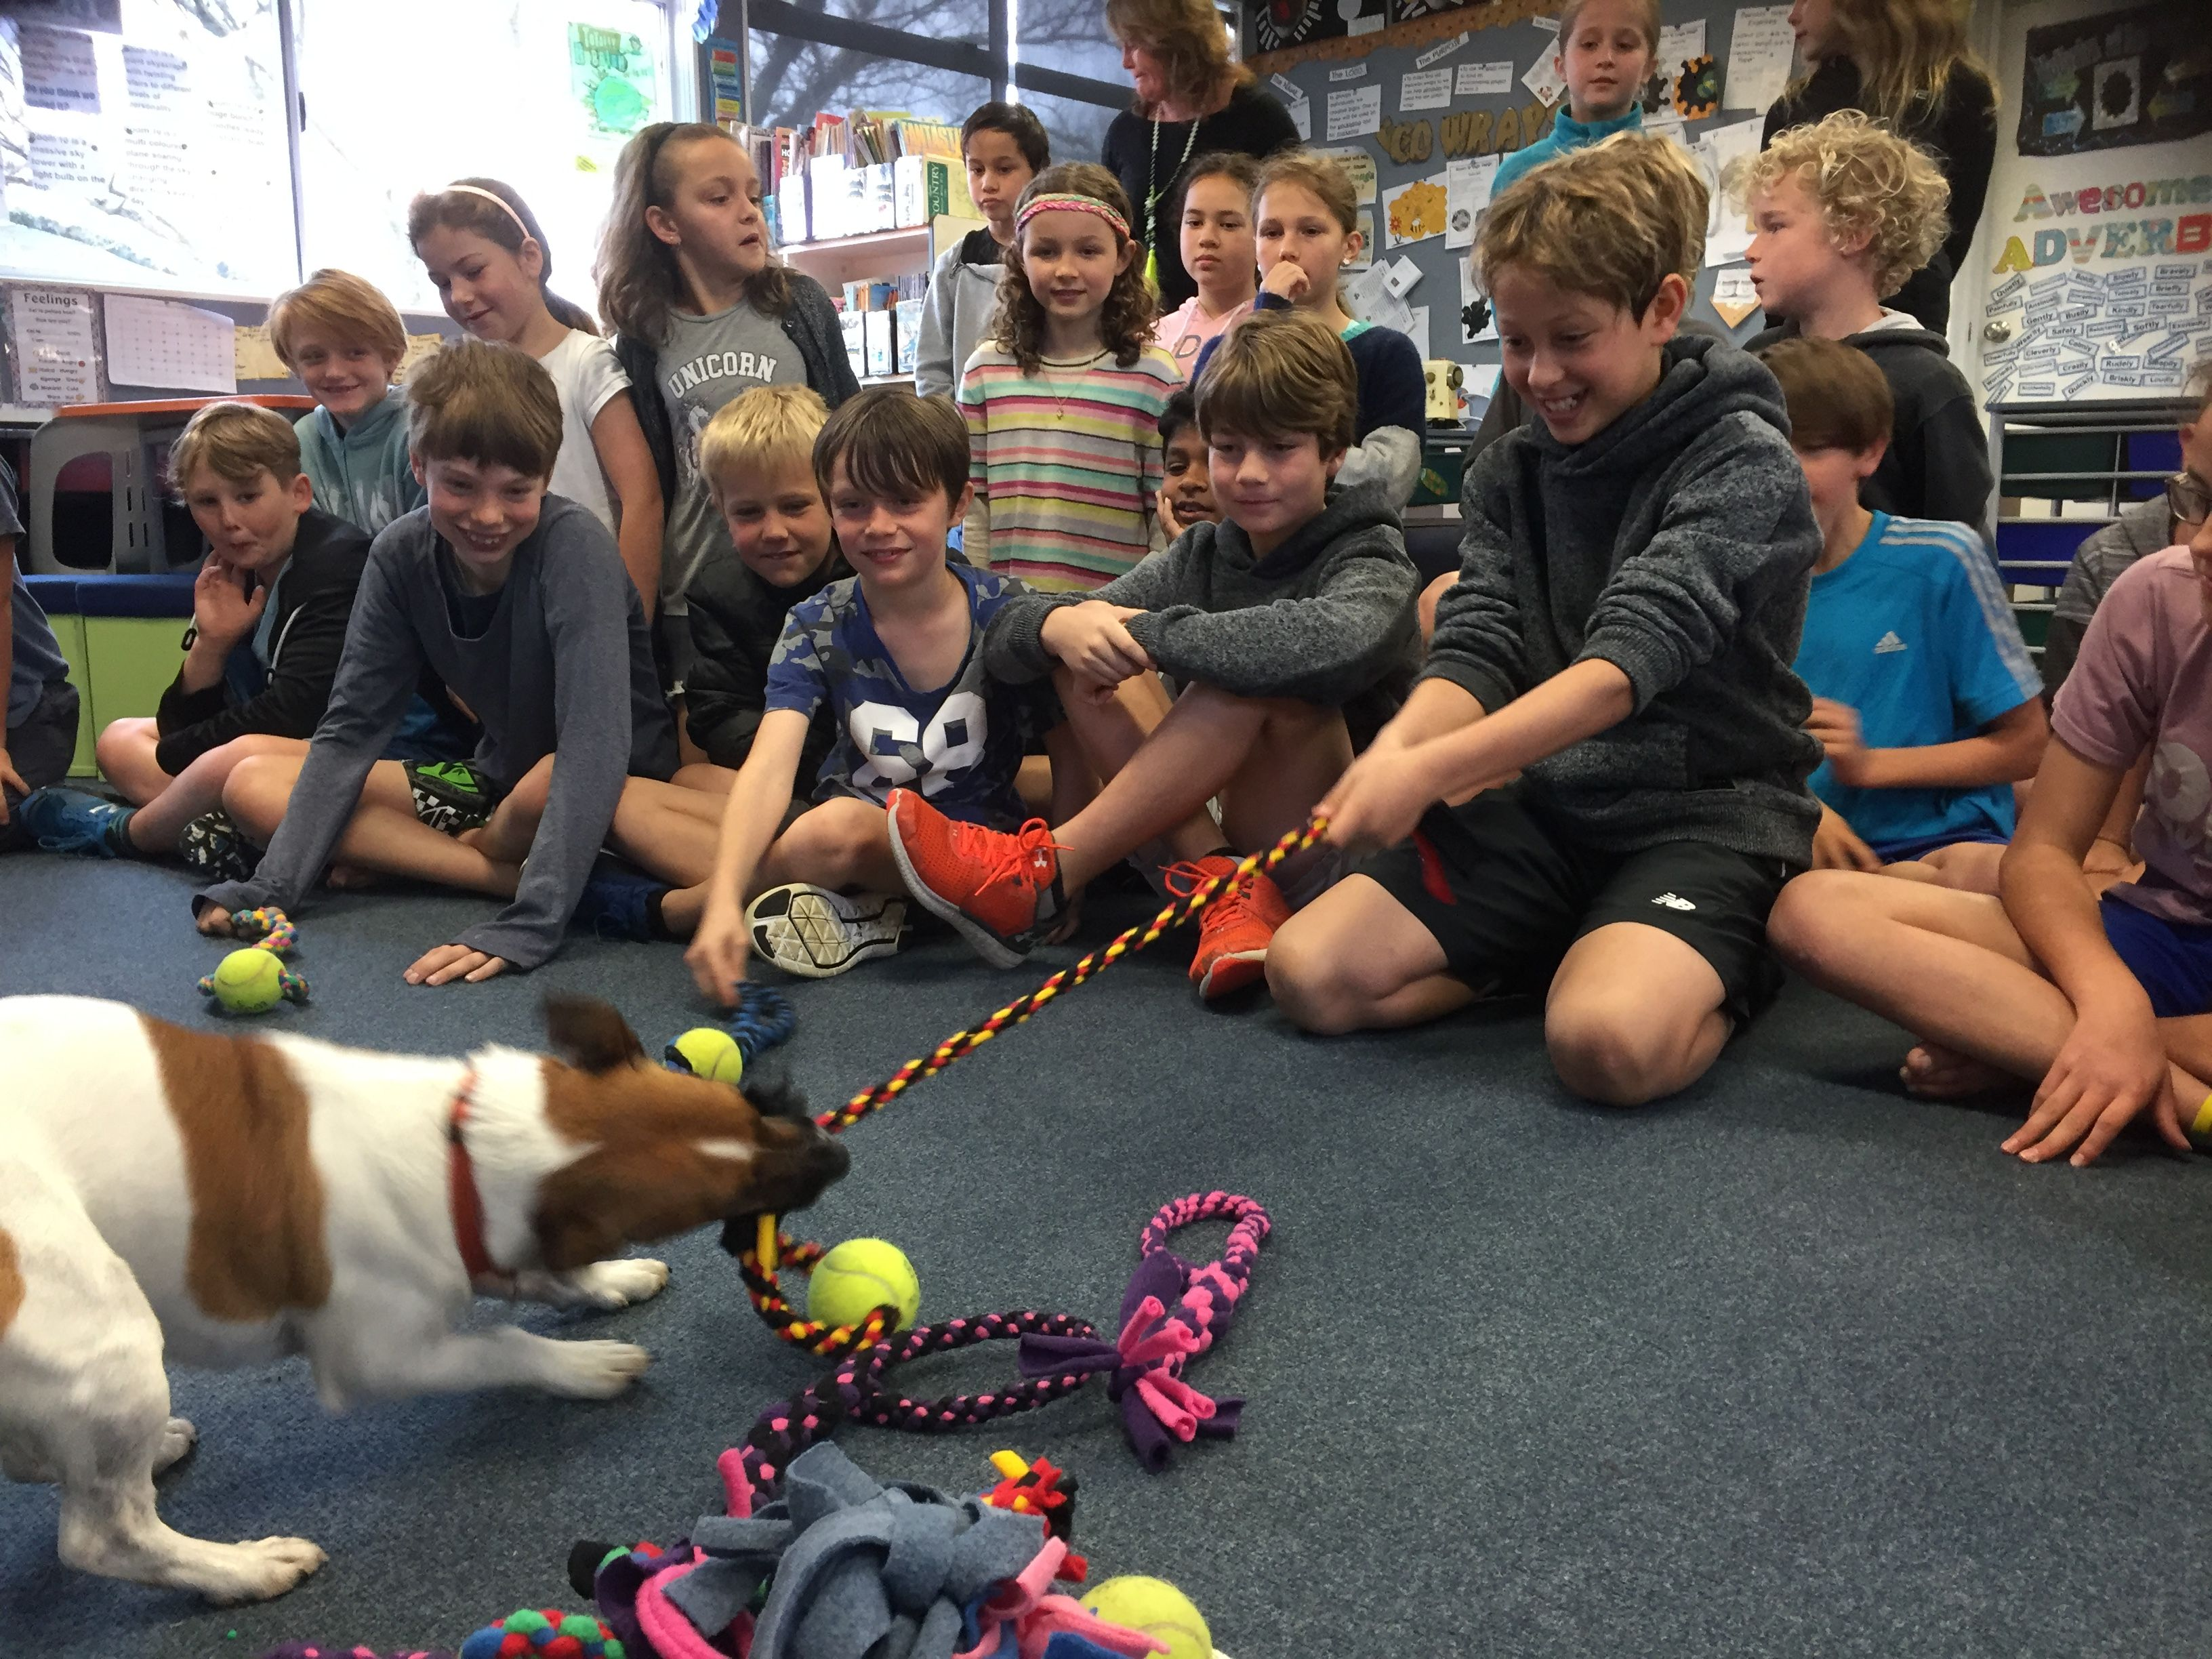 Room 24 And Room 10 From Omanu School Undertook A Joint Project To Make Dog Toys For Dog Shelters Out Of R Dog Rescue Shelters Animal Rescue Ideas Shelter Dogs